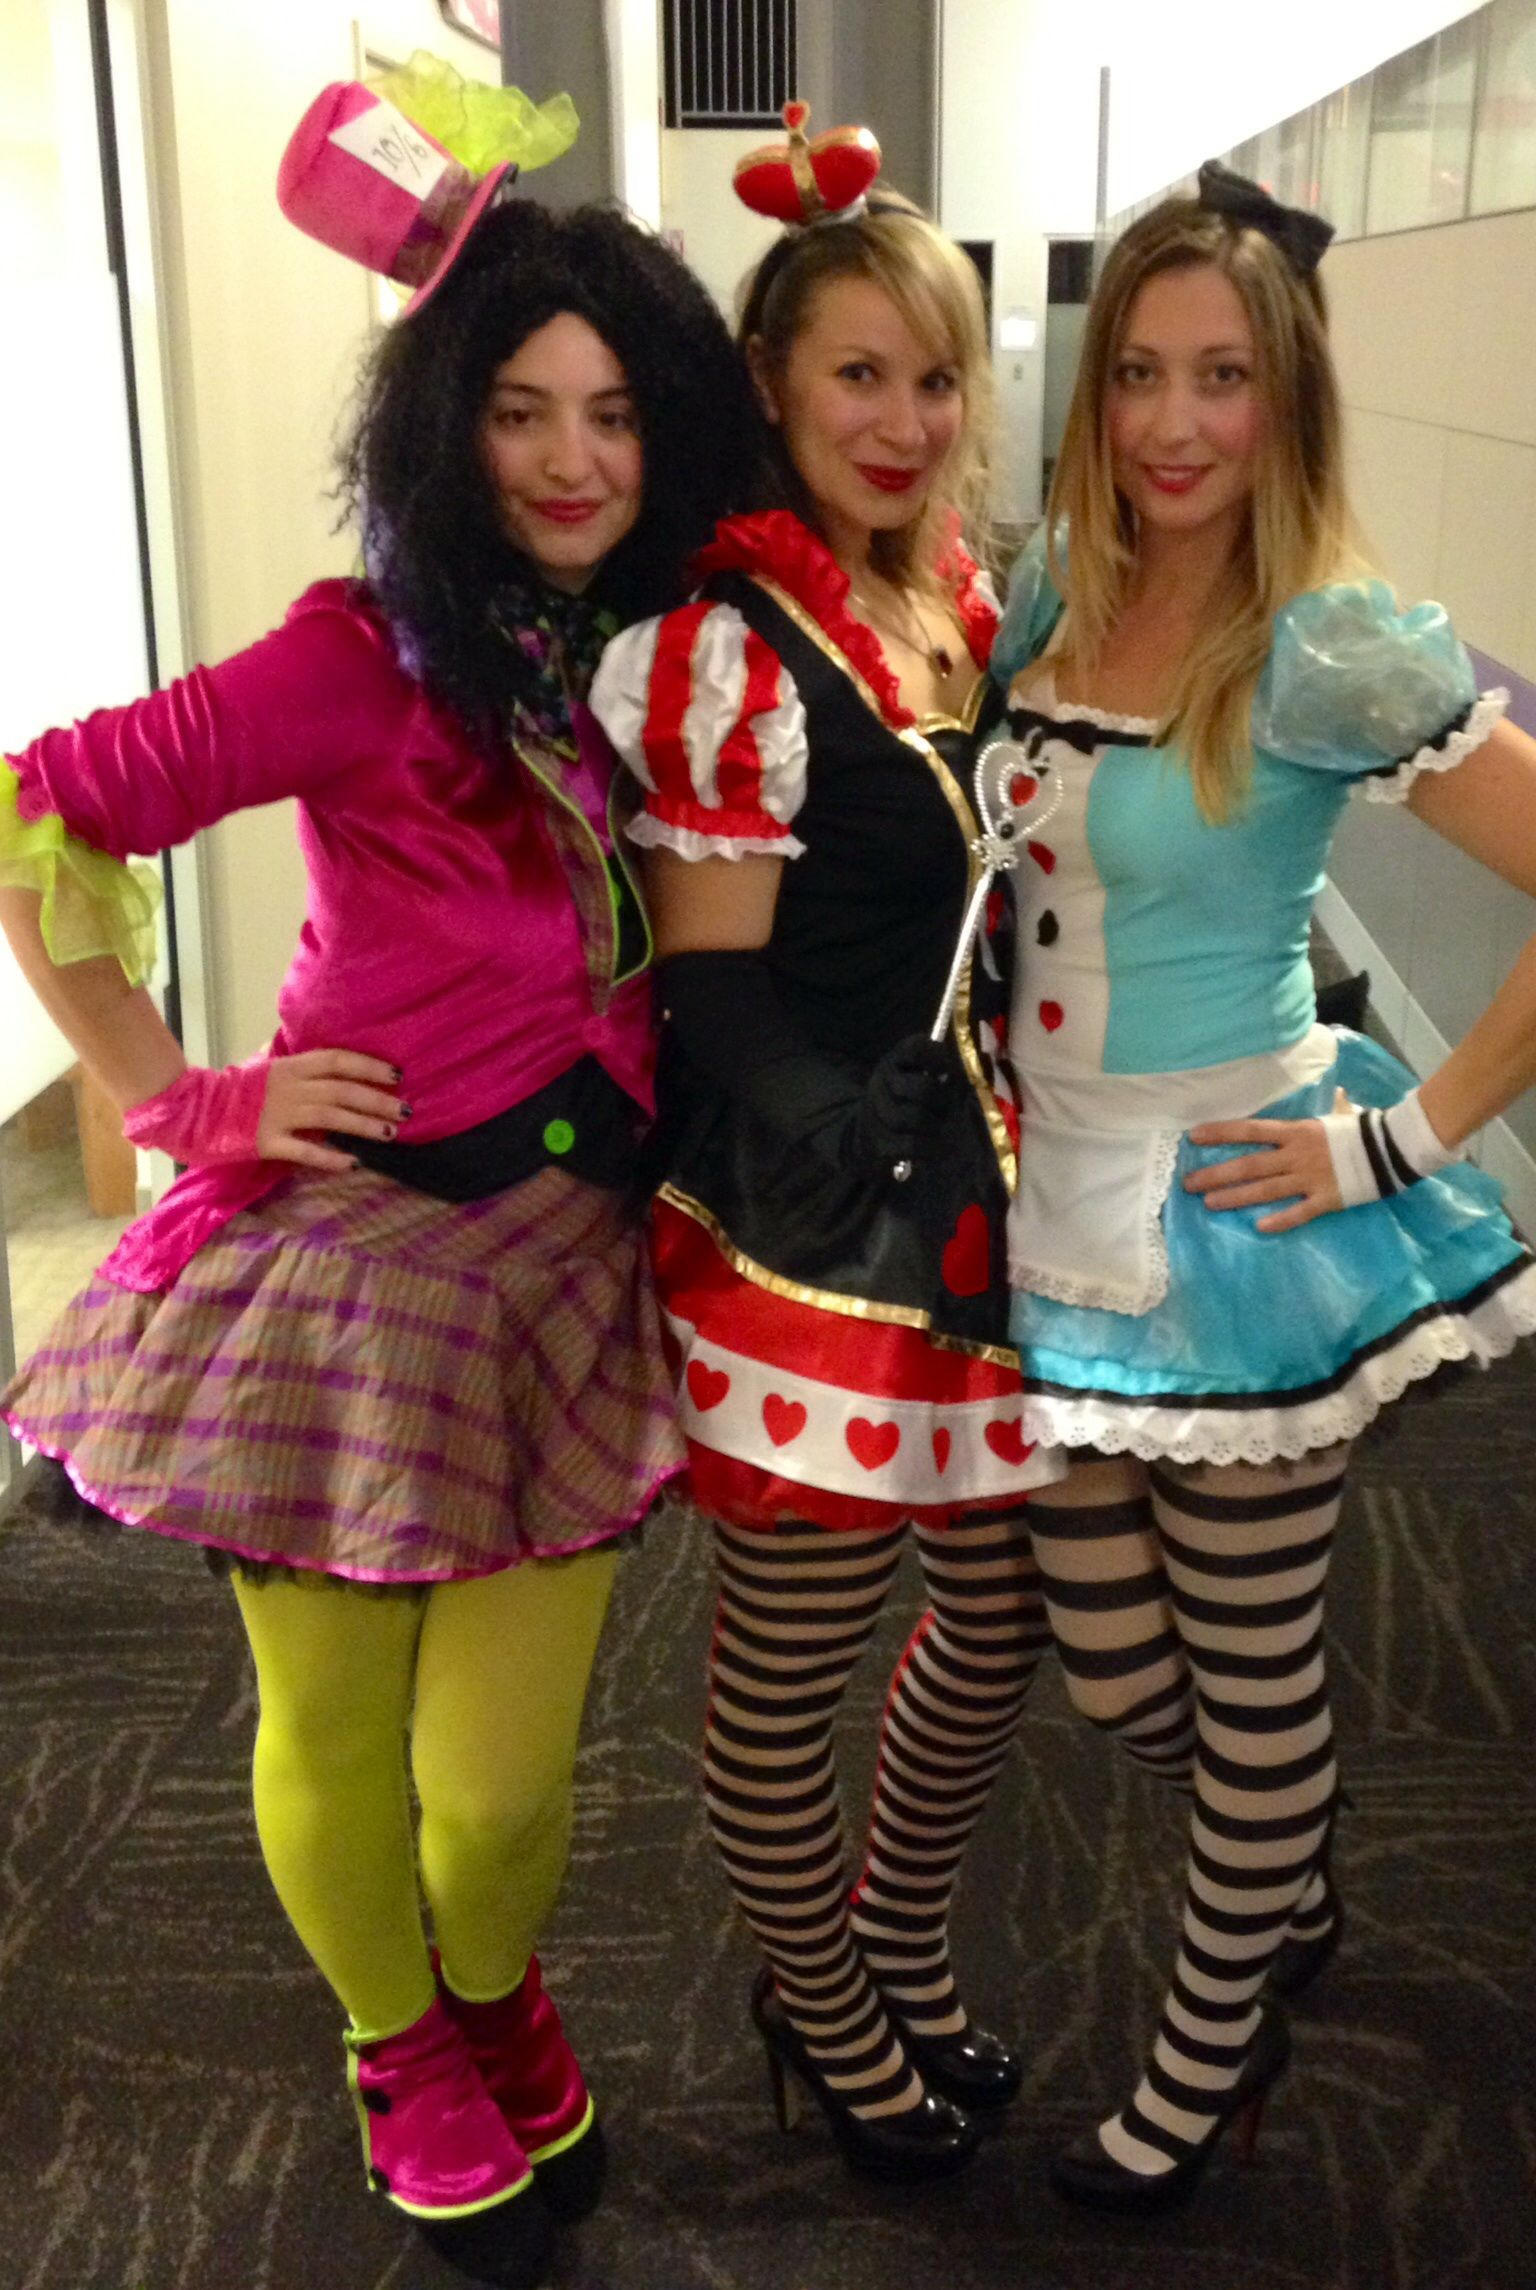 The most Wonderland day of the year! The costume party goes on at ...